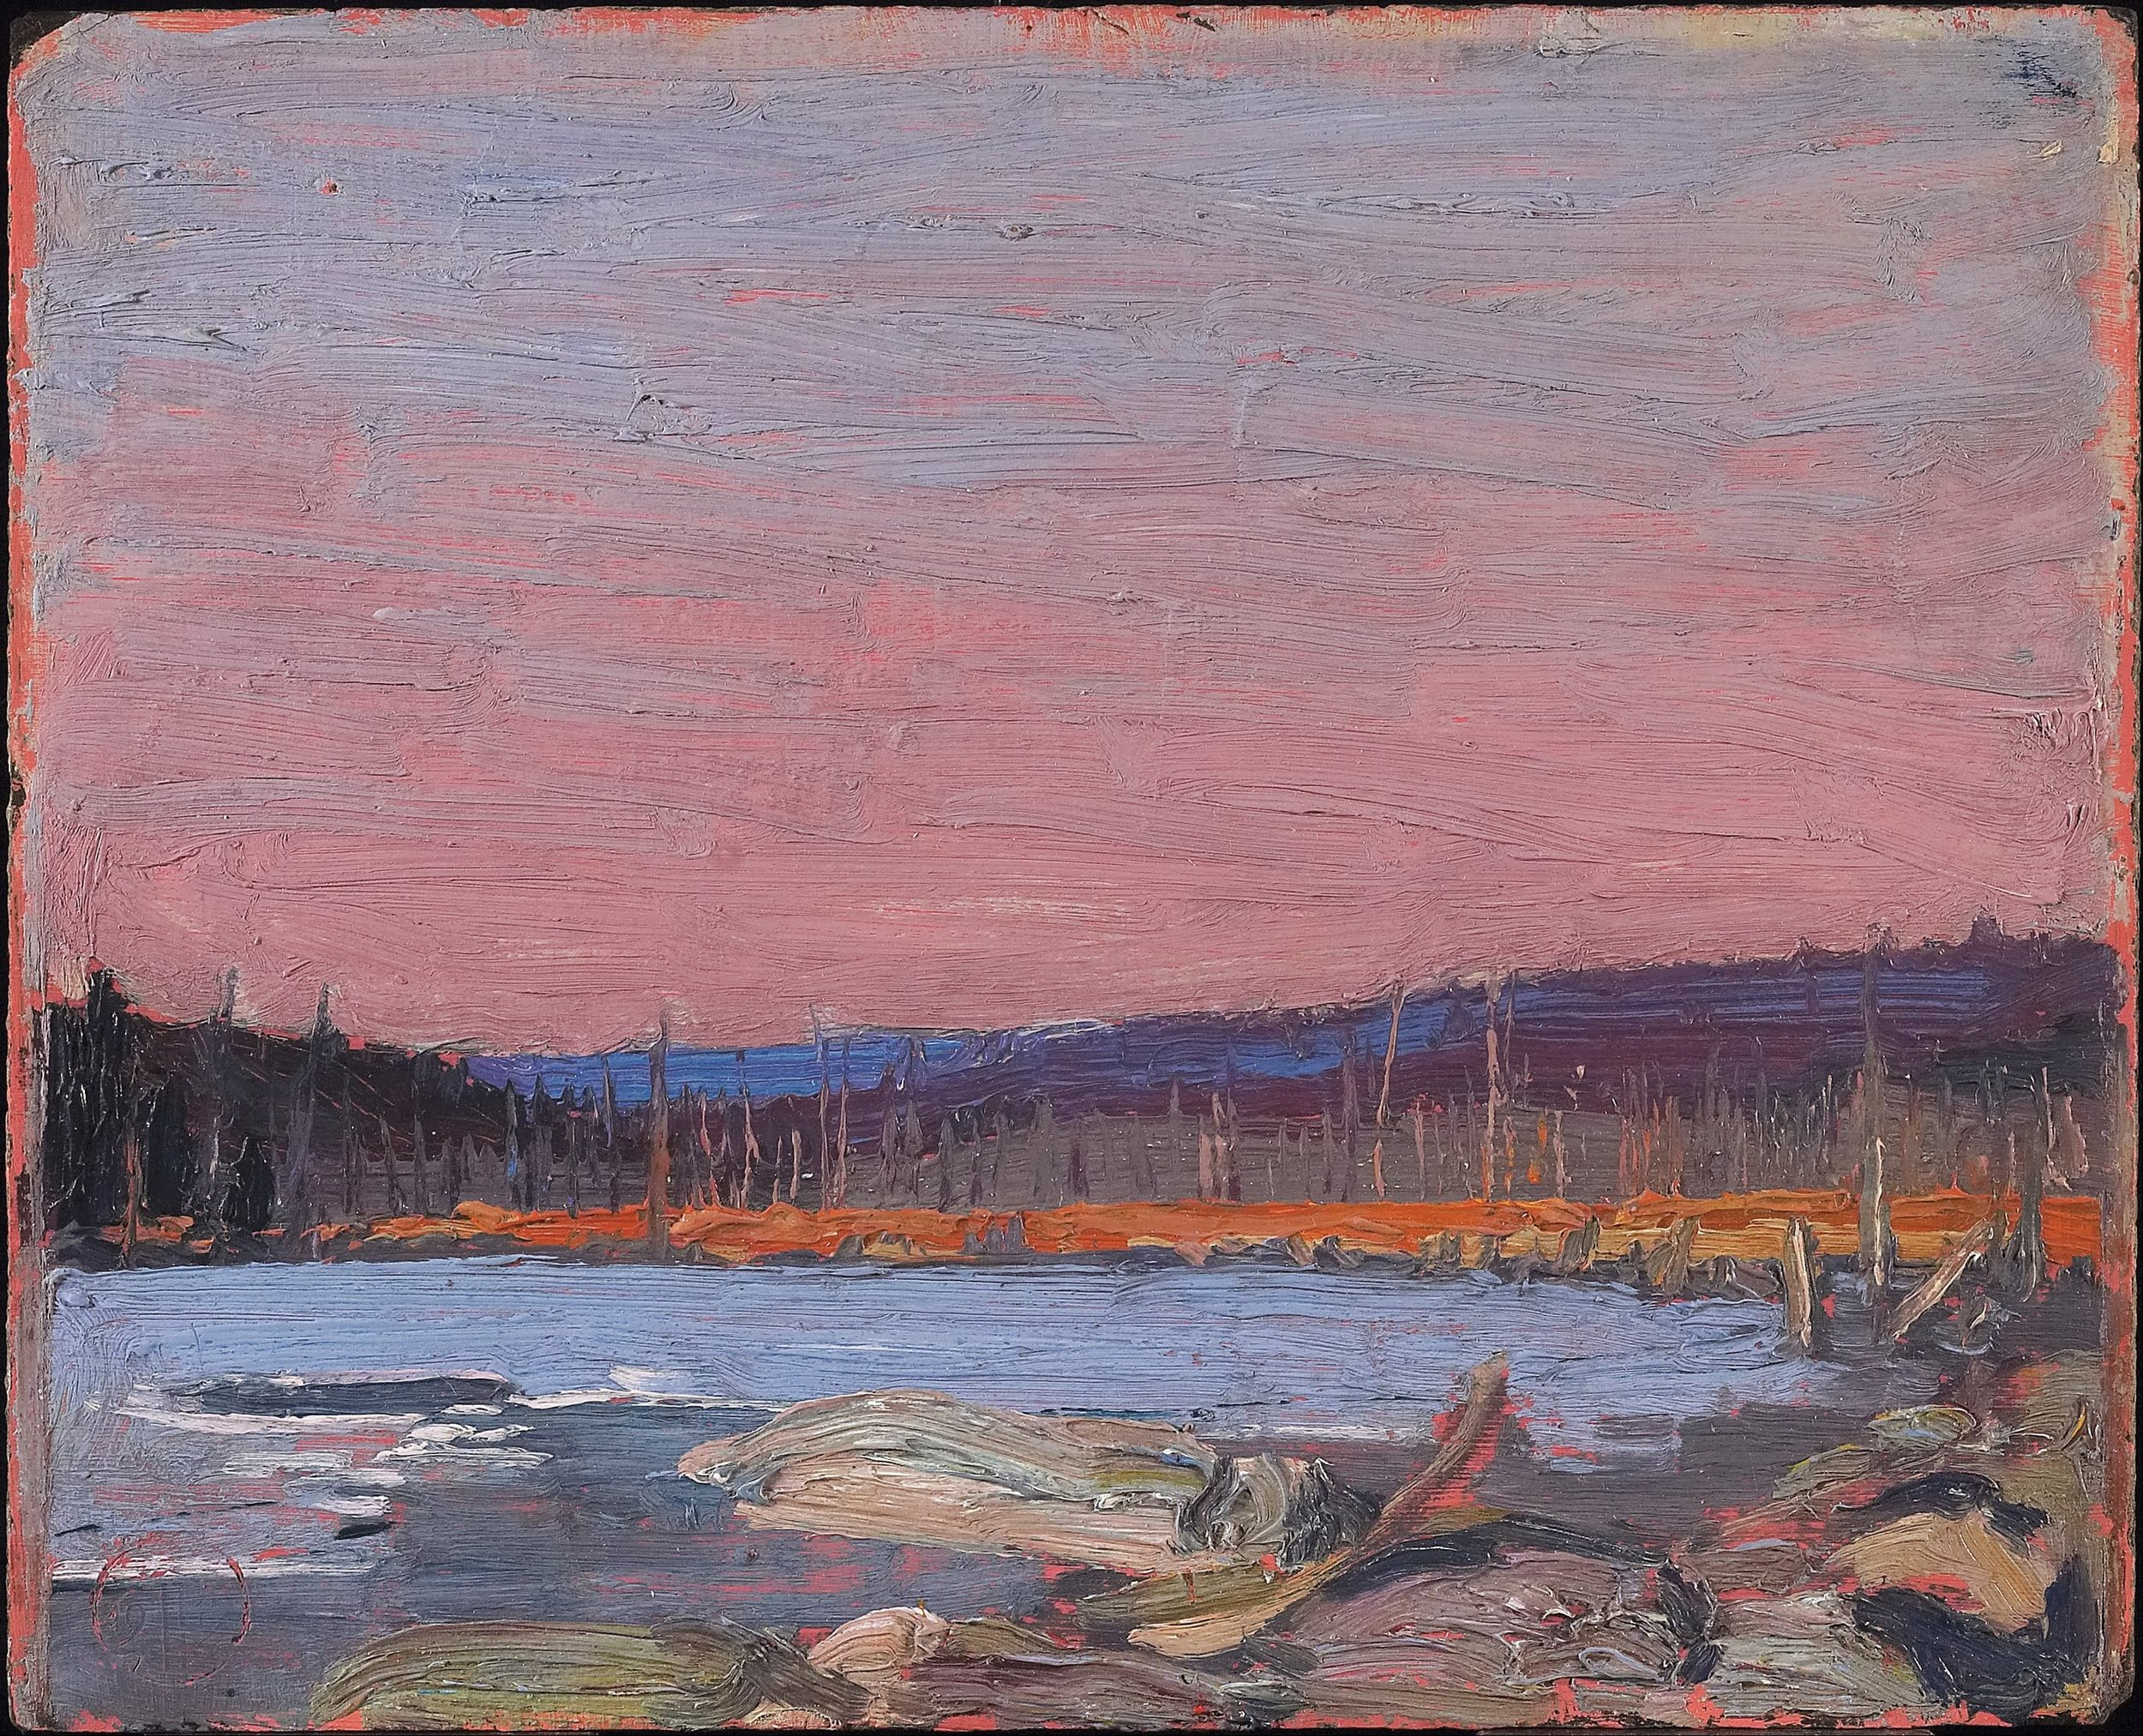 A Northern Lake , by Tom Thomson, 1911/21 (Wikimedia Commons)